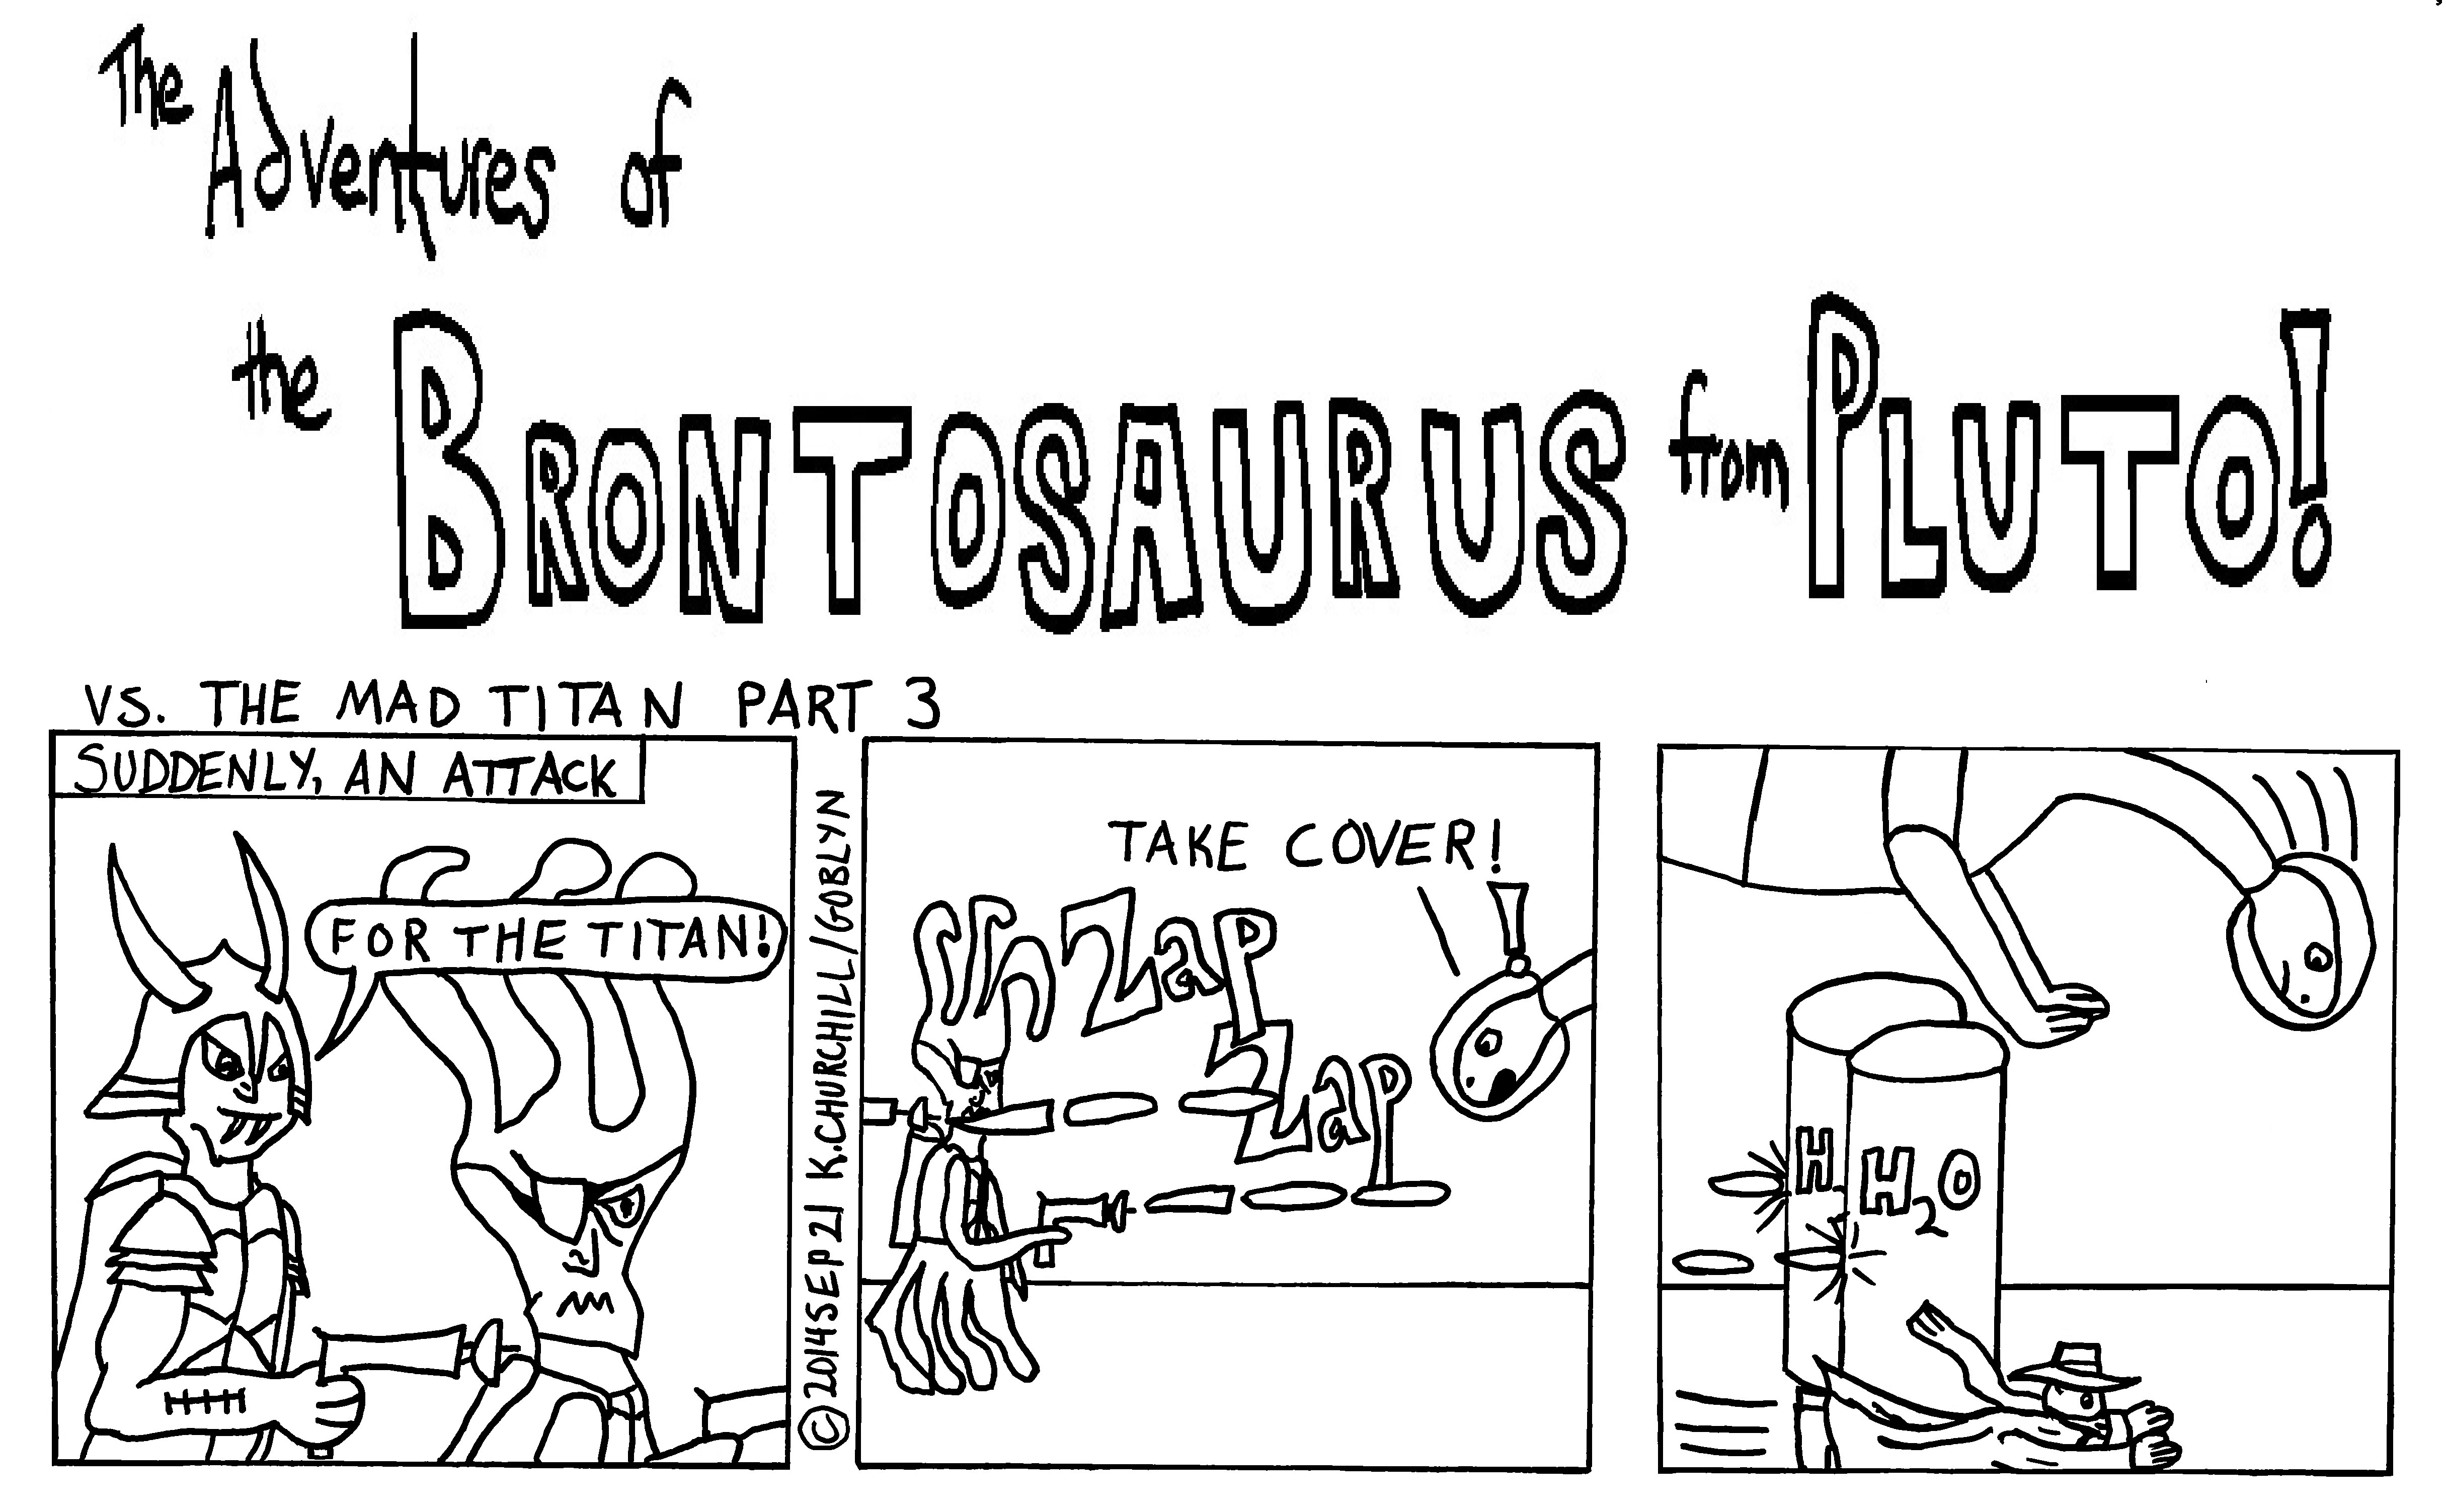 The Brontosaurus from Pluto is attacked by Space Pirates!